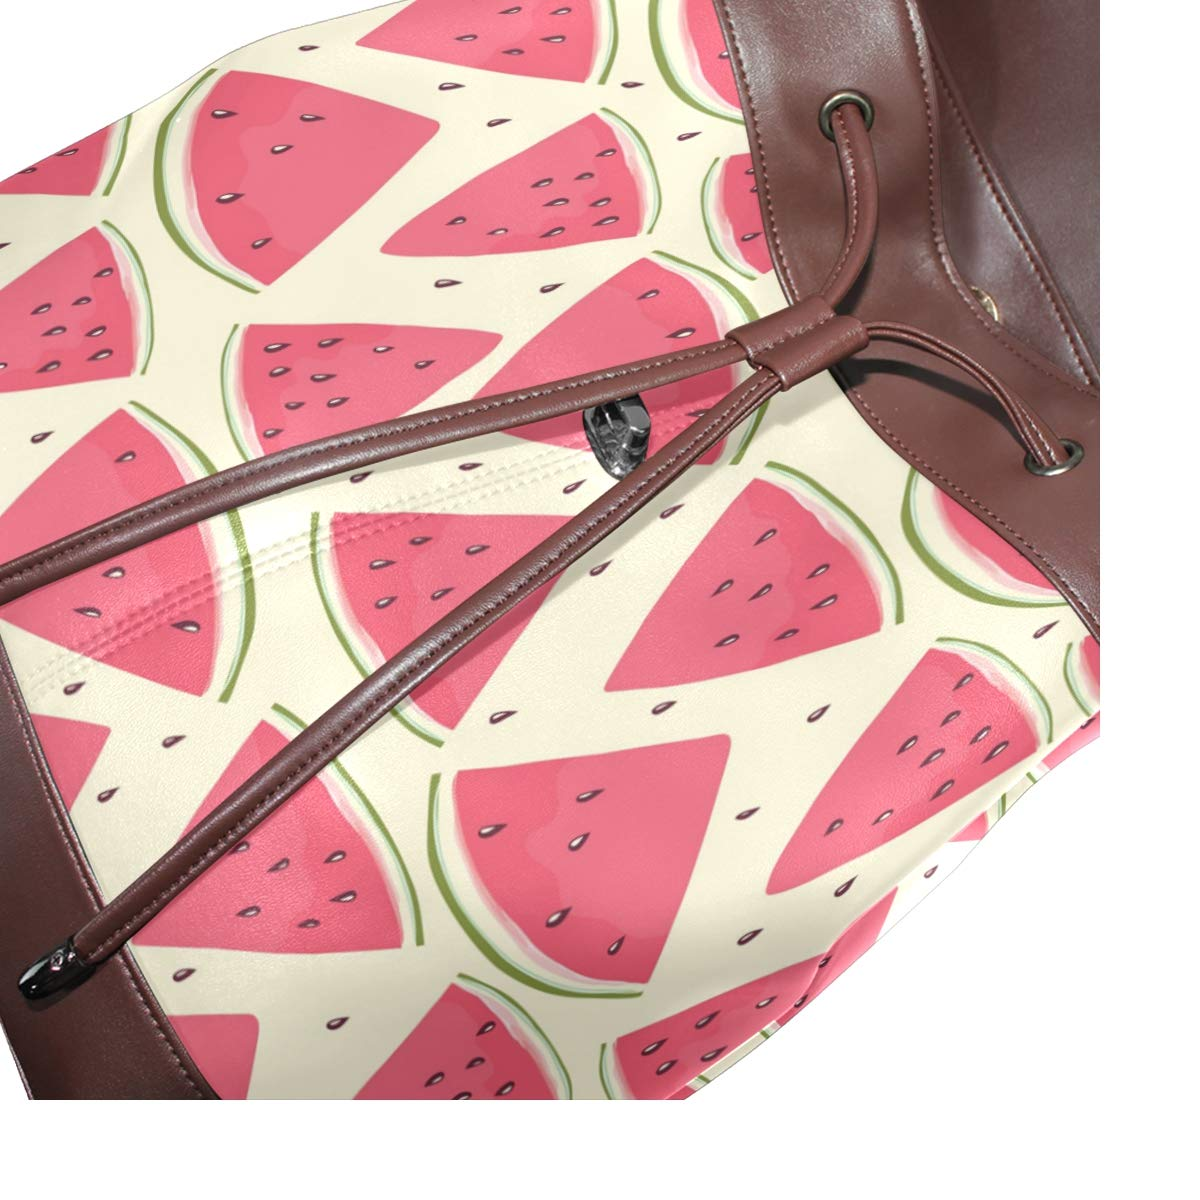 Amazon.com: FAJRO Seamless Watermelon Leather Backpack ...